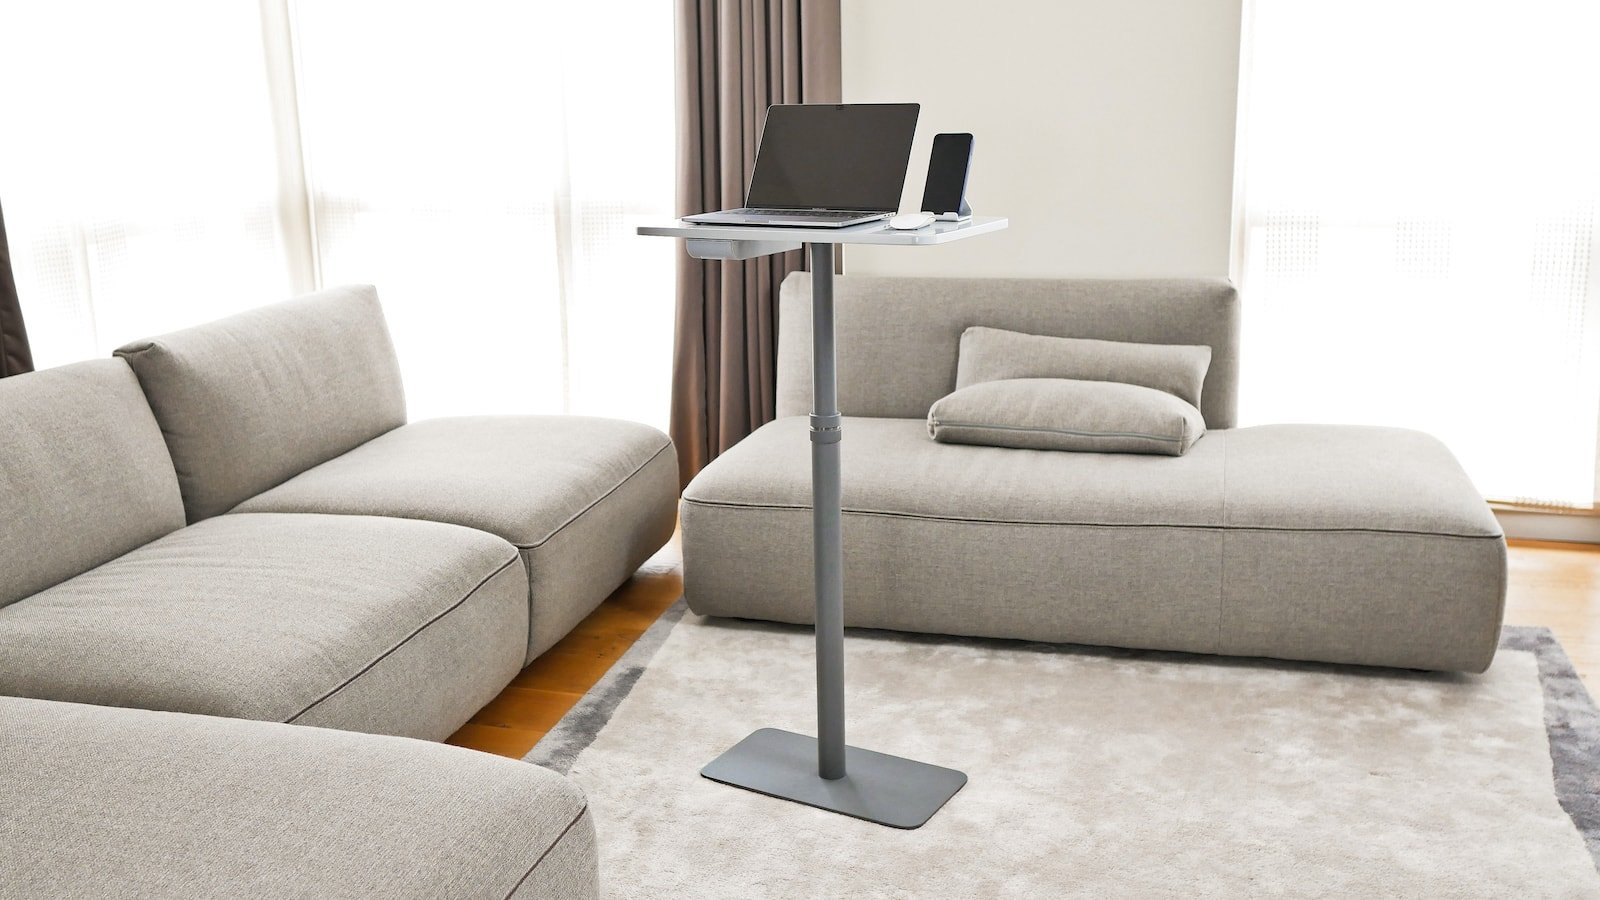 Remotable portable desk helps you stay healthy and productive when working from home